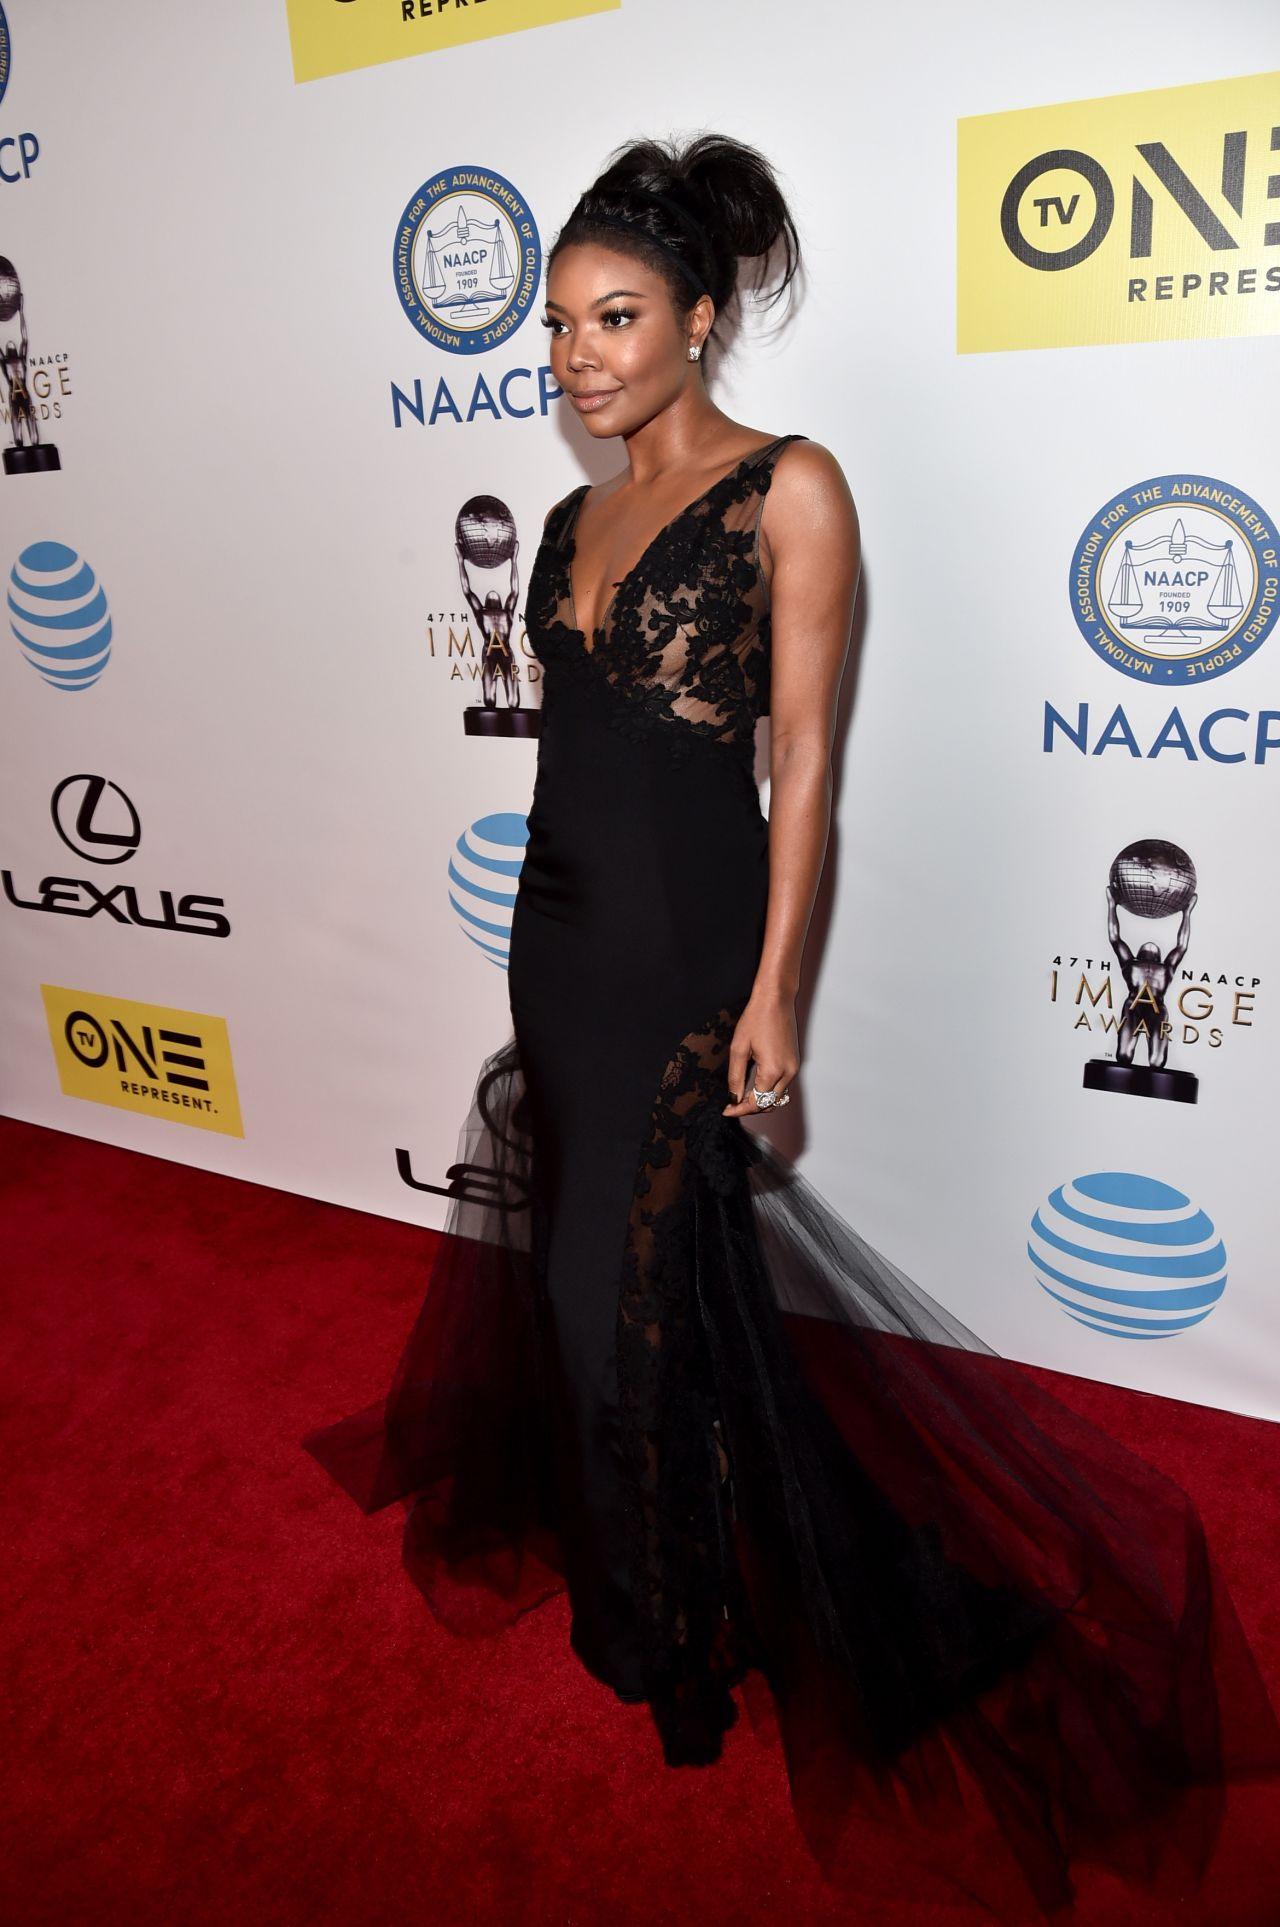 gabrielle-union-naacp-image-awards-2016-presented-by-tv-one-in-pasadena-ca-2